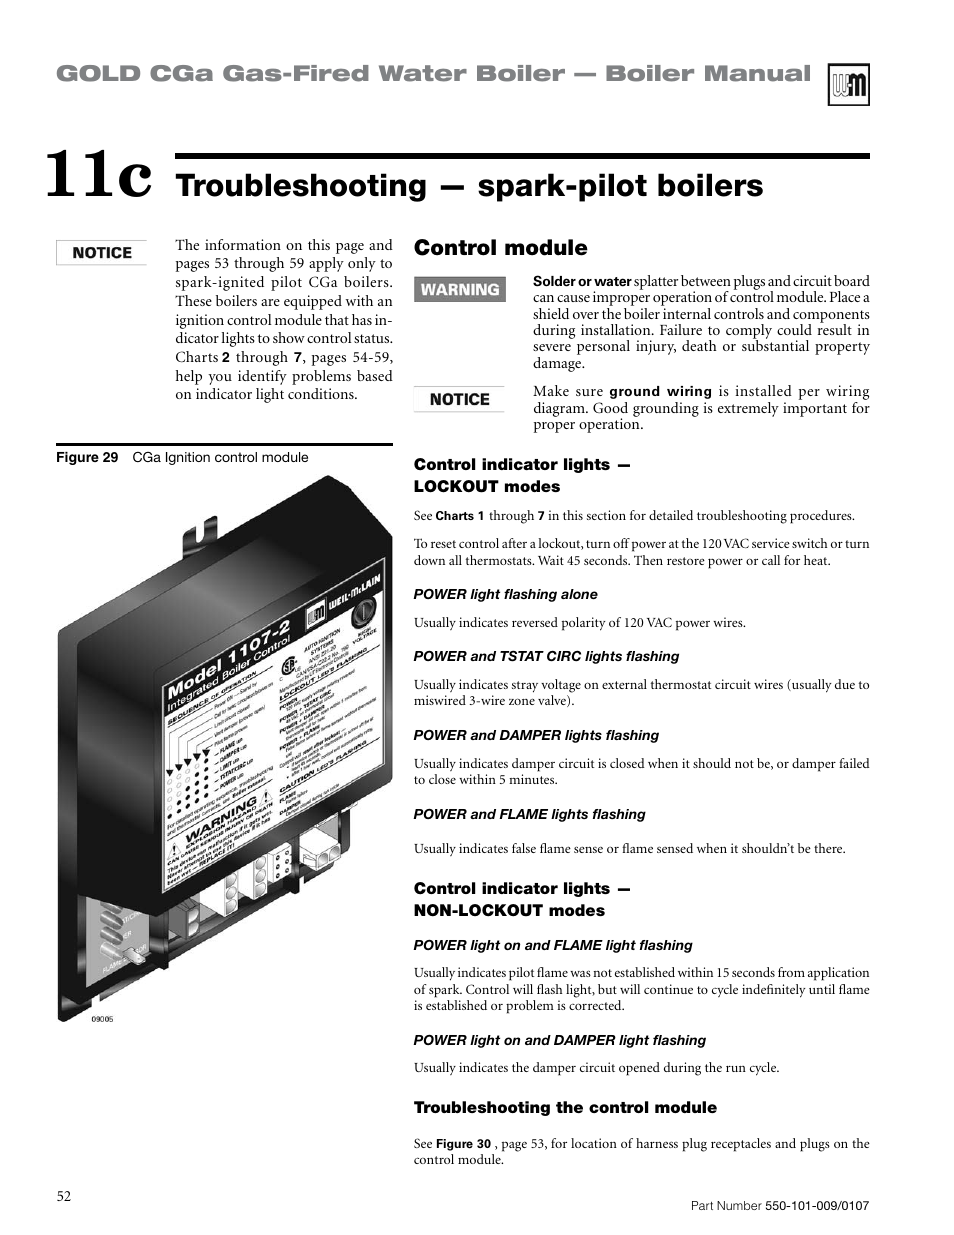 Troubleshooting — spark-pilot boilers, Gold cga gas-fired water ...